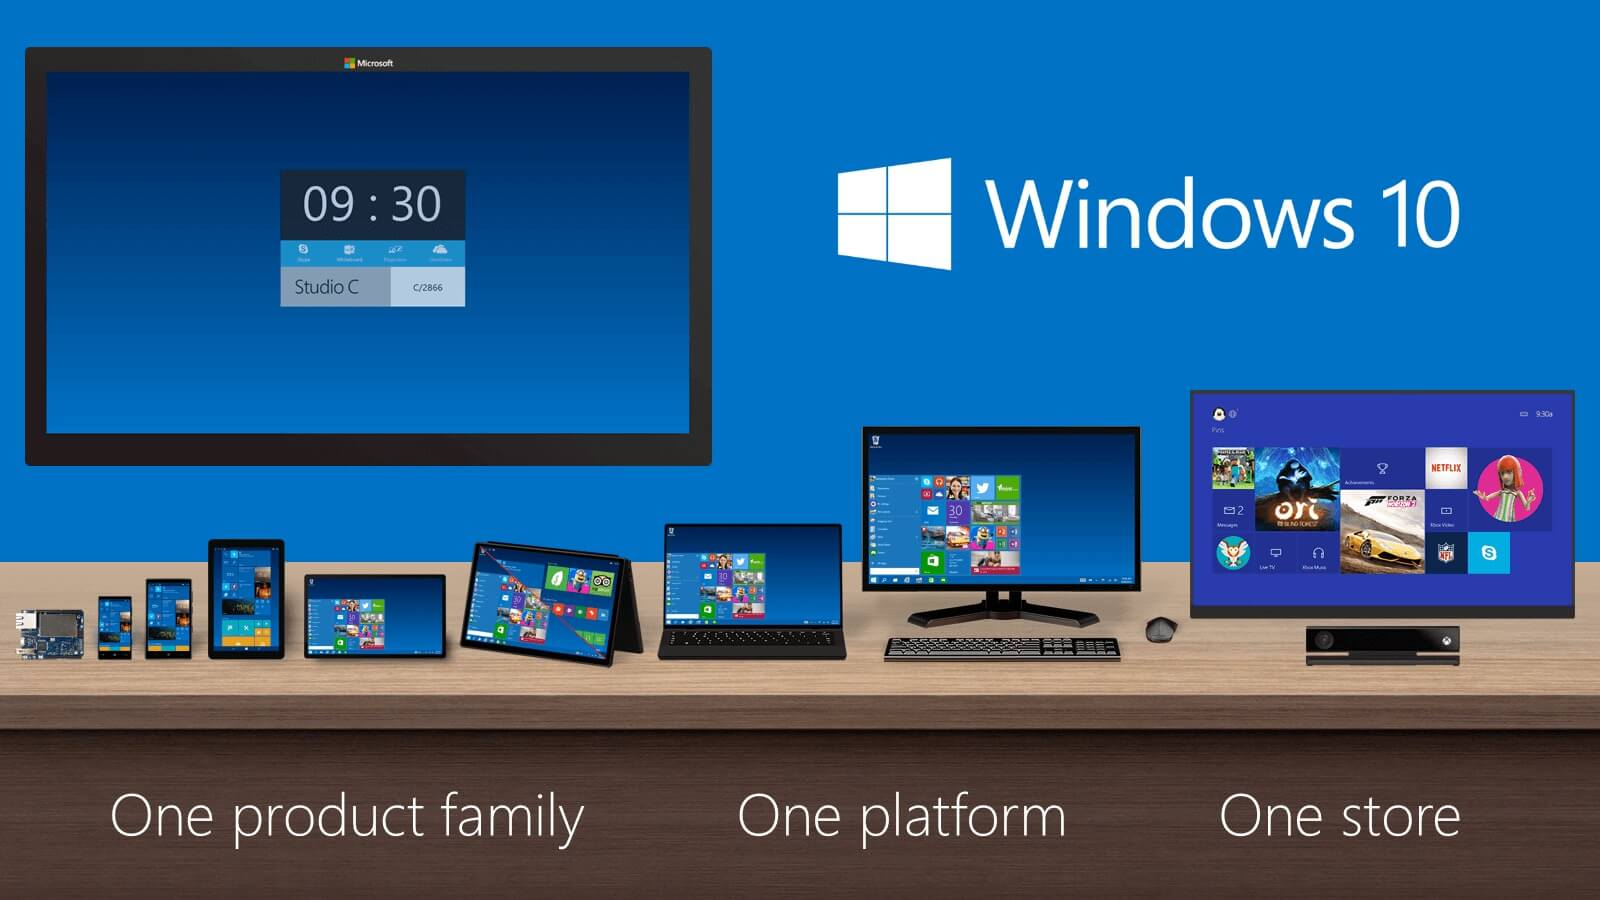 Windows 10 and Xbox One